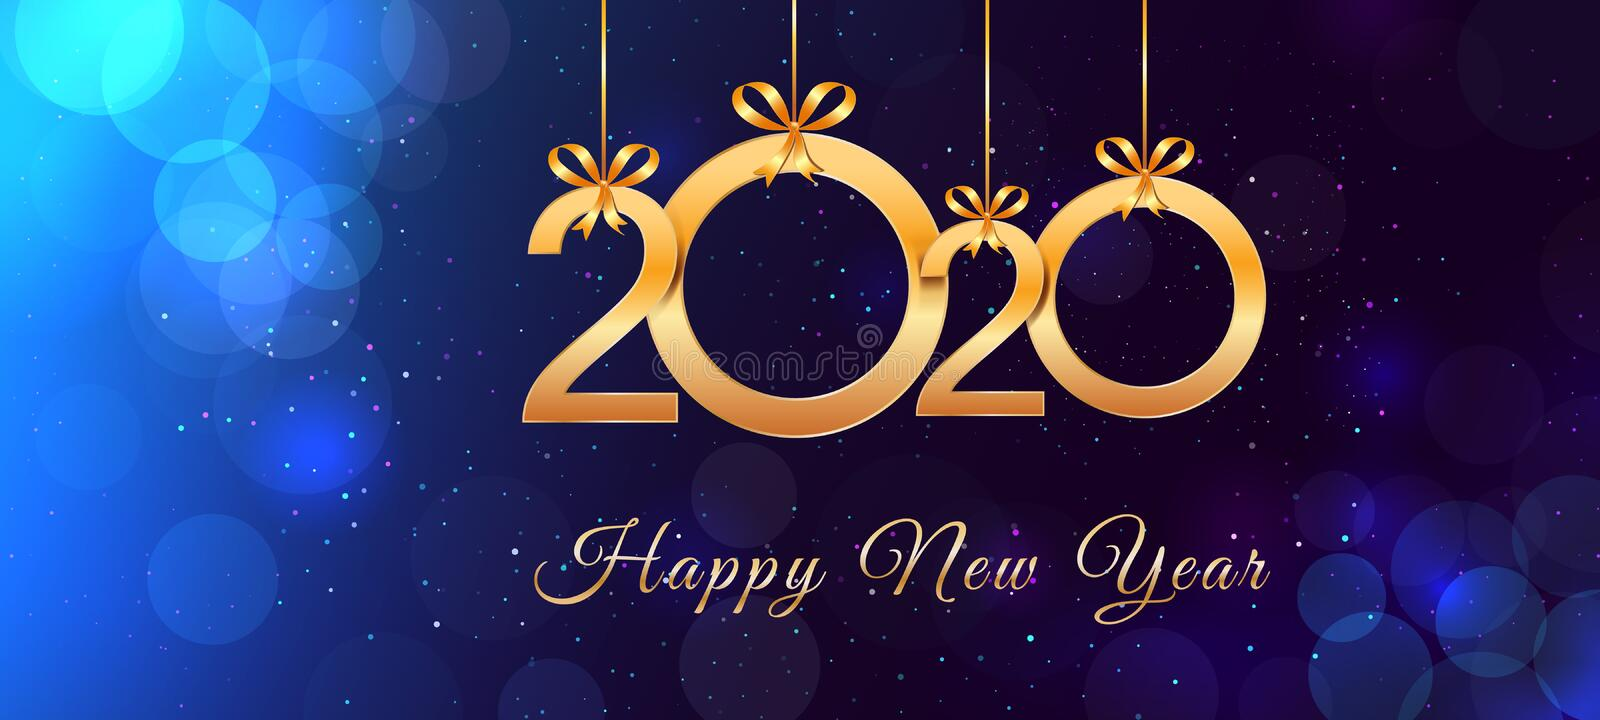 Happy New Year 2020 text design with hanging shiny gold numbers and ribbon bows on blue background with bokeh effect stock illustration